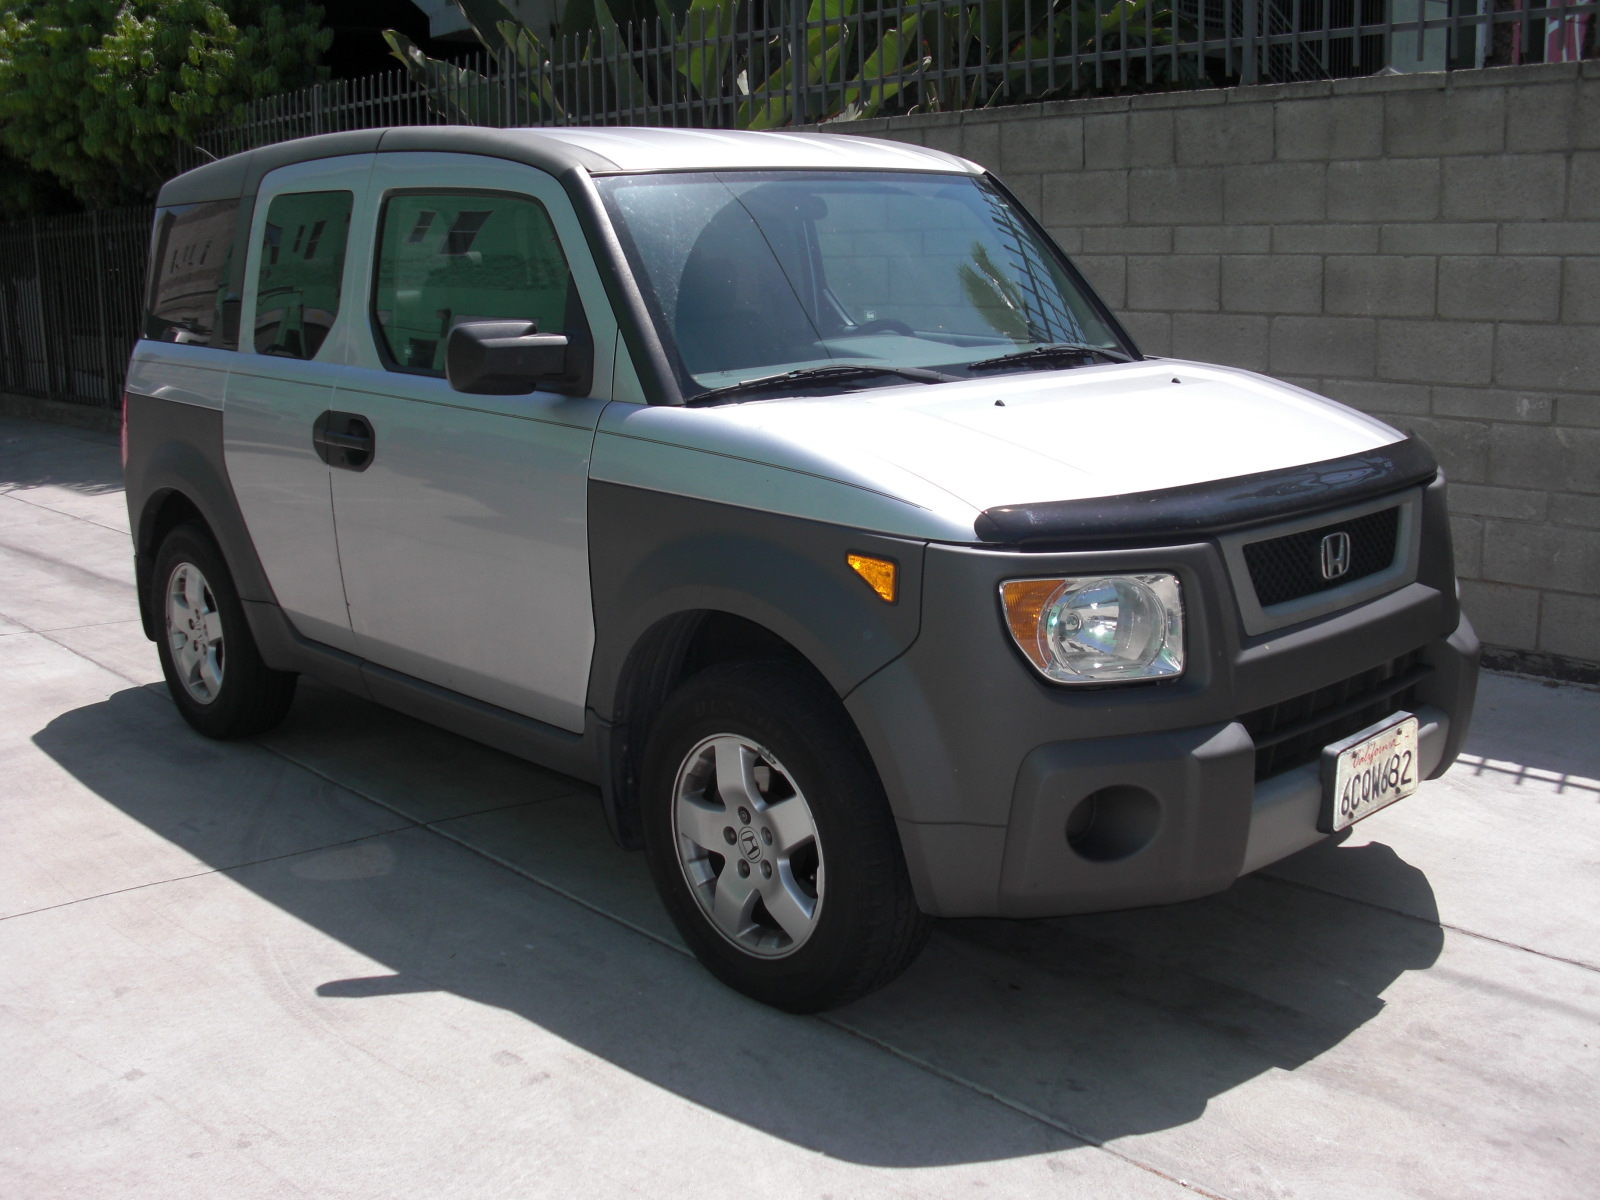 used honda element for sale cargurus used cars new html. Black Bedroom Furniture Sets. Home Design Ideas